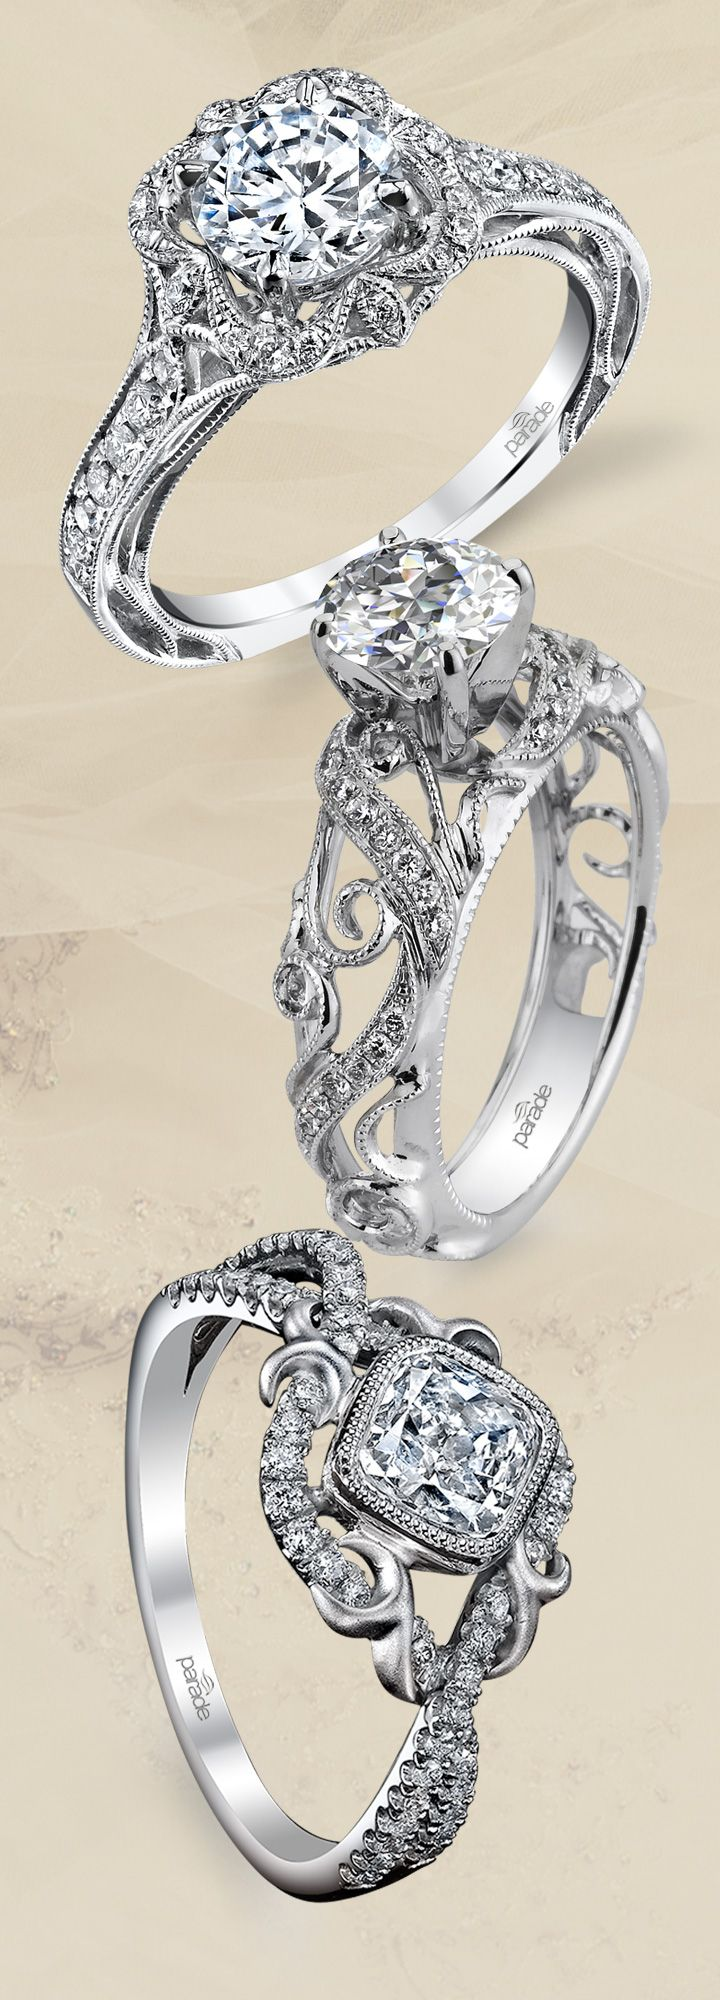 Intricate Engagement Rings From Parade Design Are So Sophisticated! (styles  R3195, R3055 And